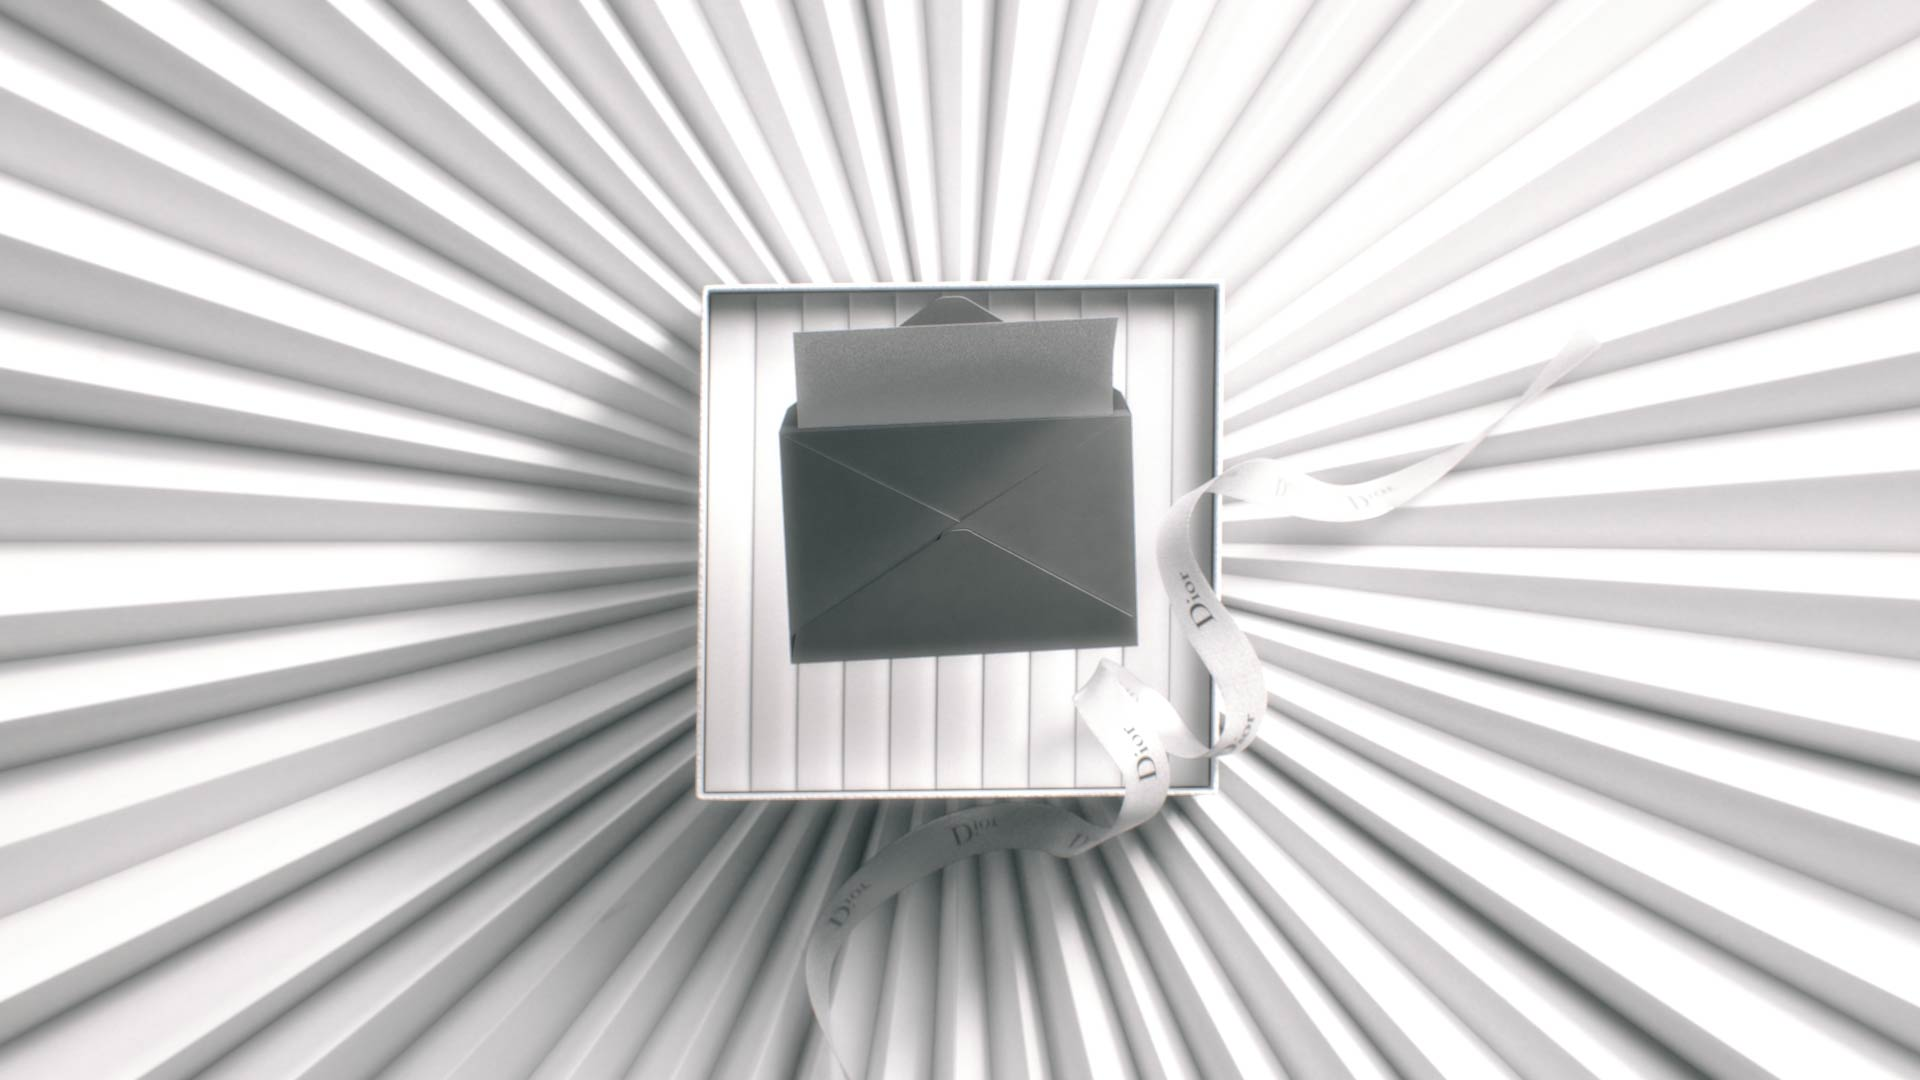 3D Dior gift box with an opening mail on top